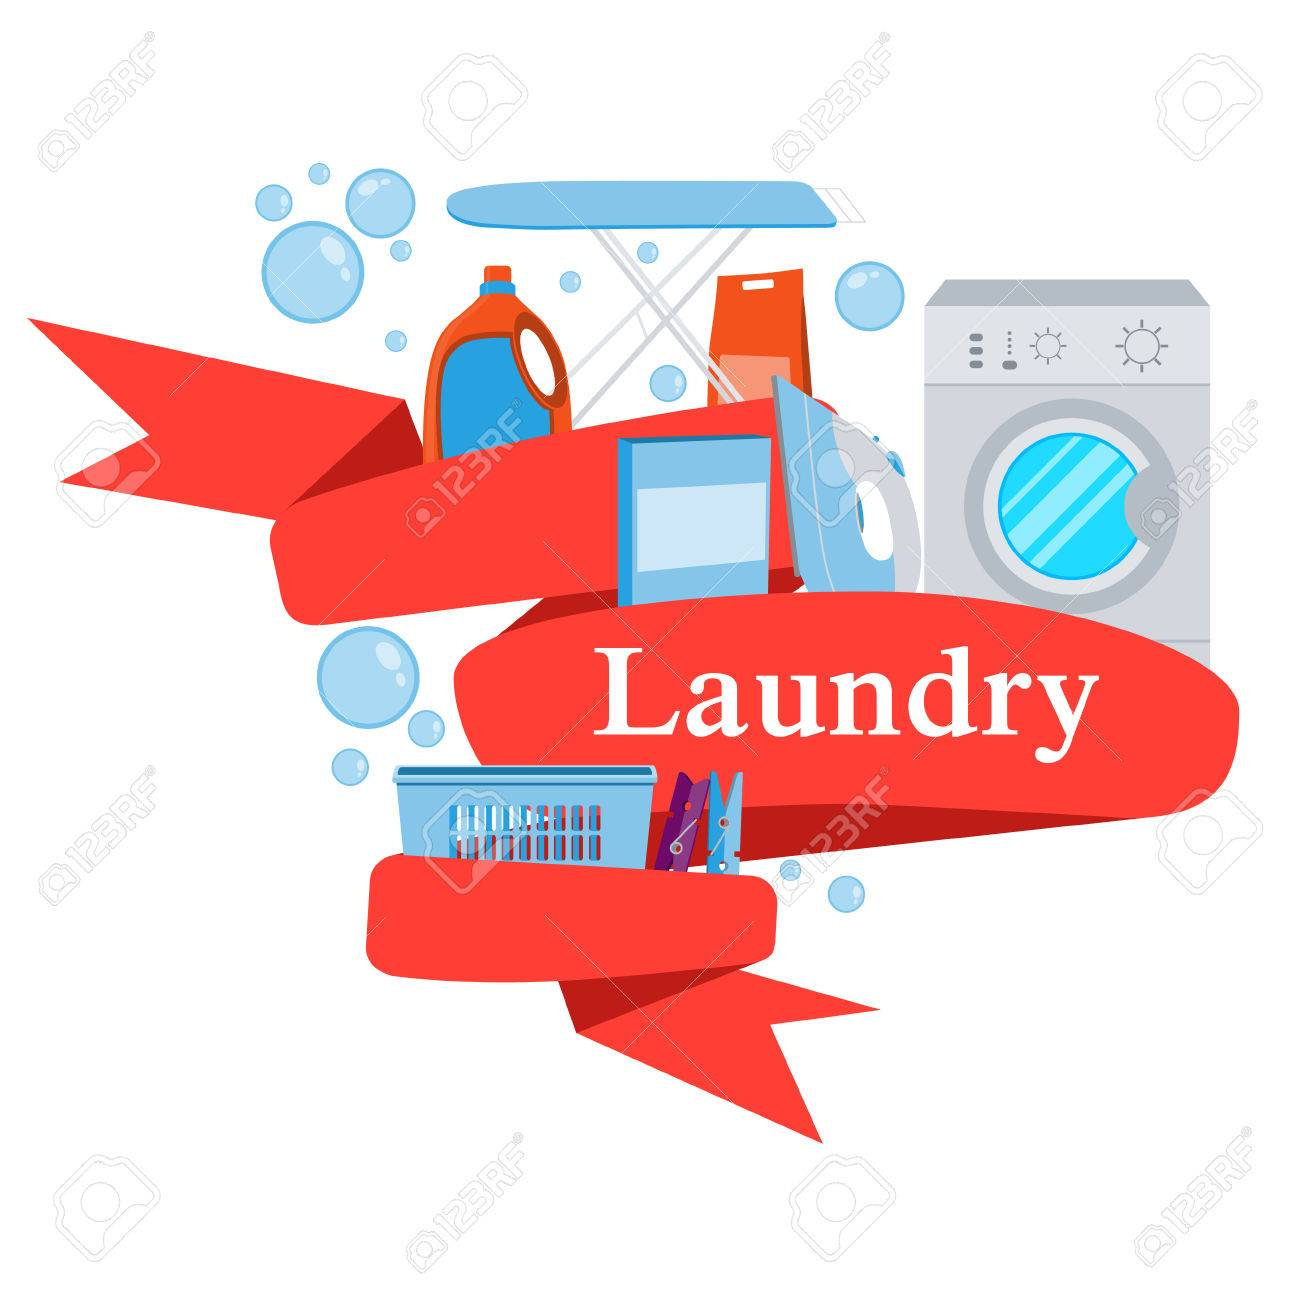 Laundry Detergent Clipart red ribbon laundry. washing machine and laundry detergent